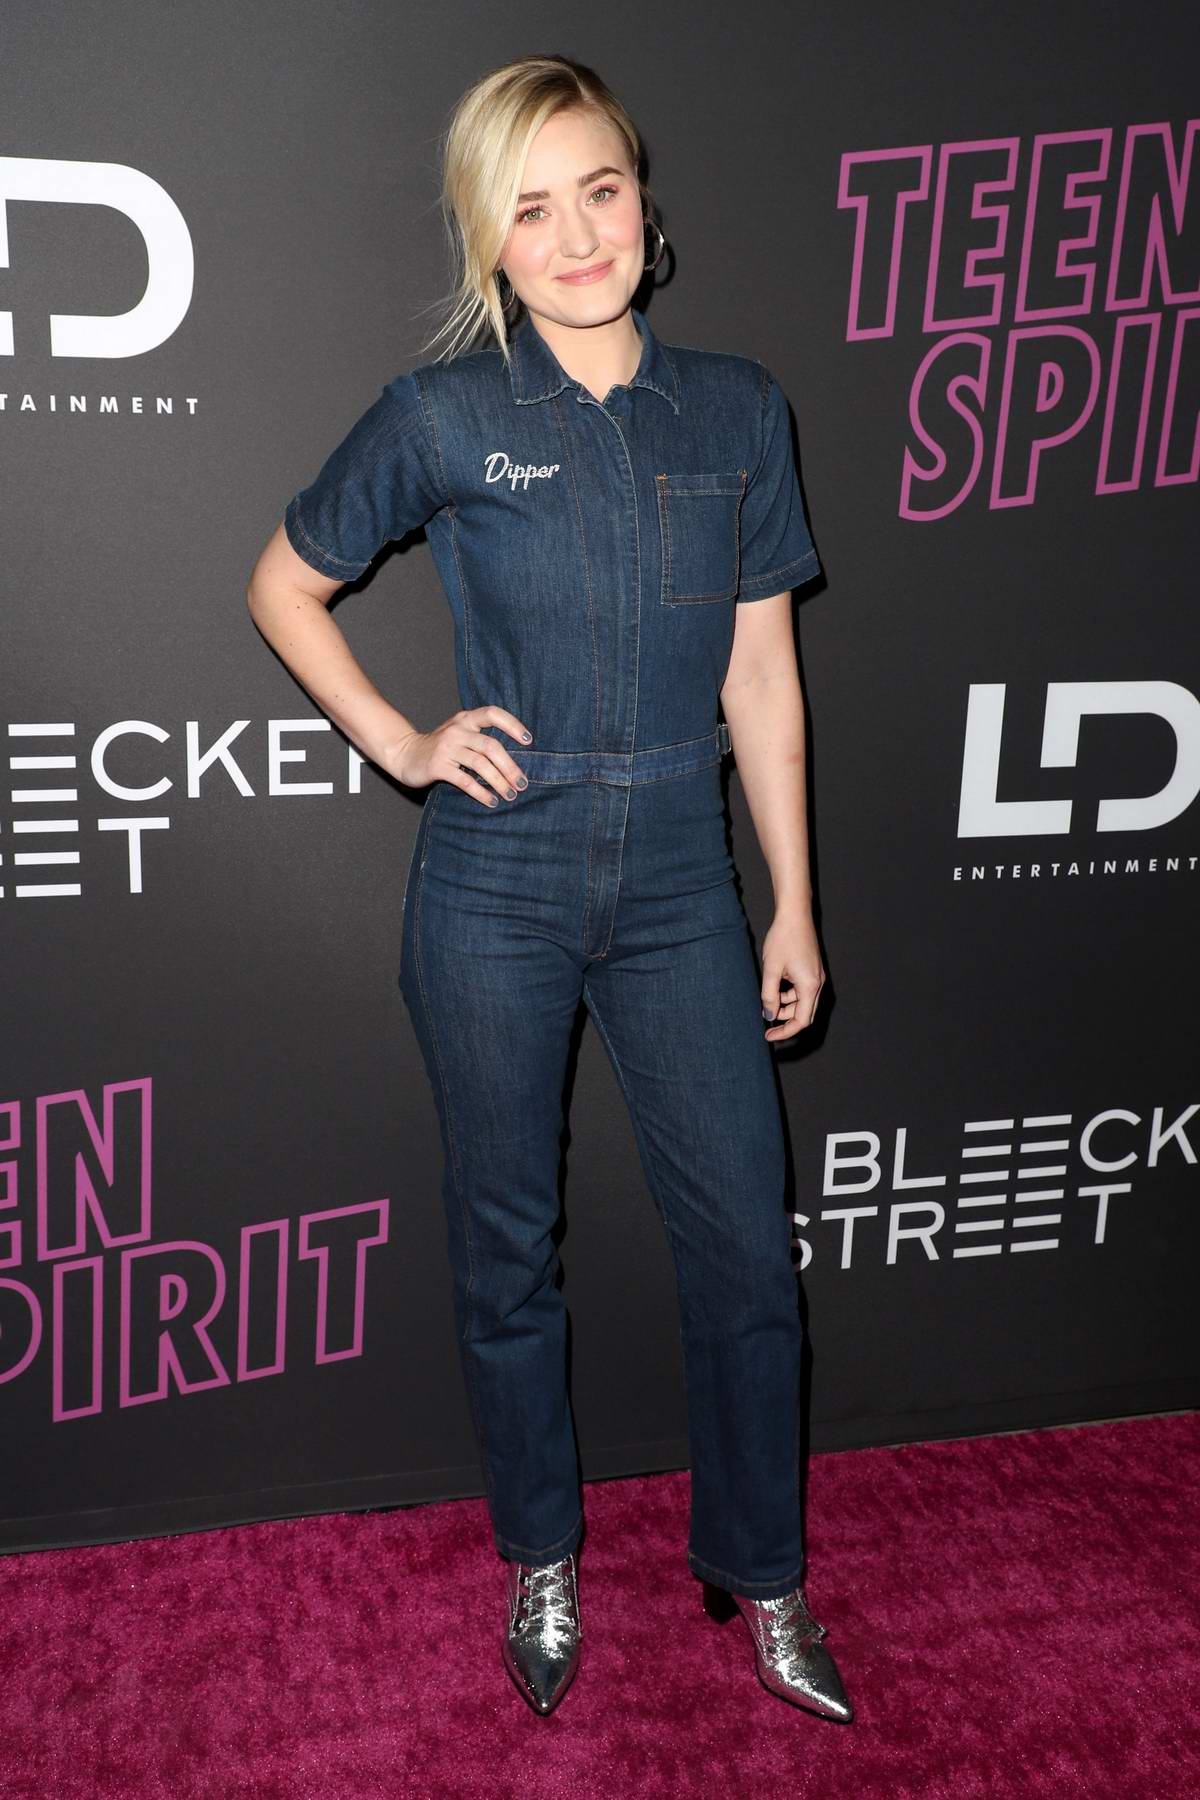 AJ Michalka attends the special screening of 'Teen Spirit' at The Arclight Cinemas in Los Angeles